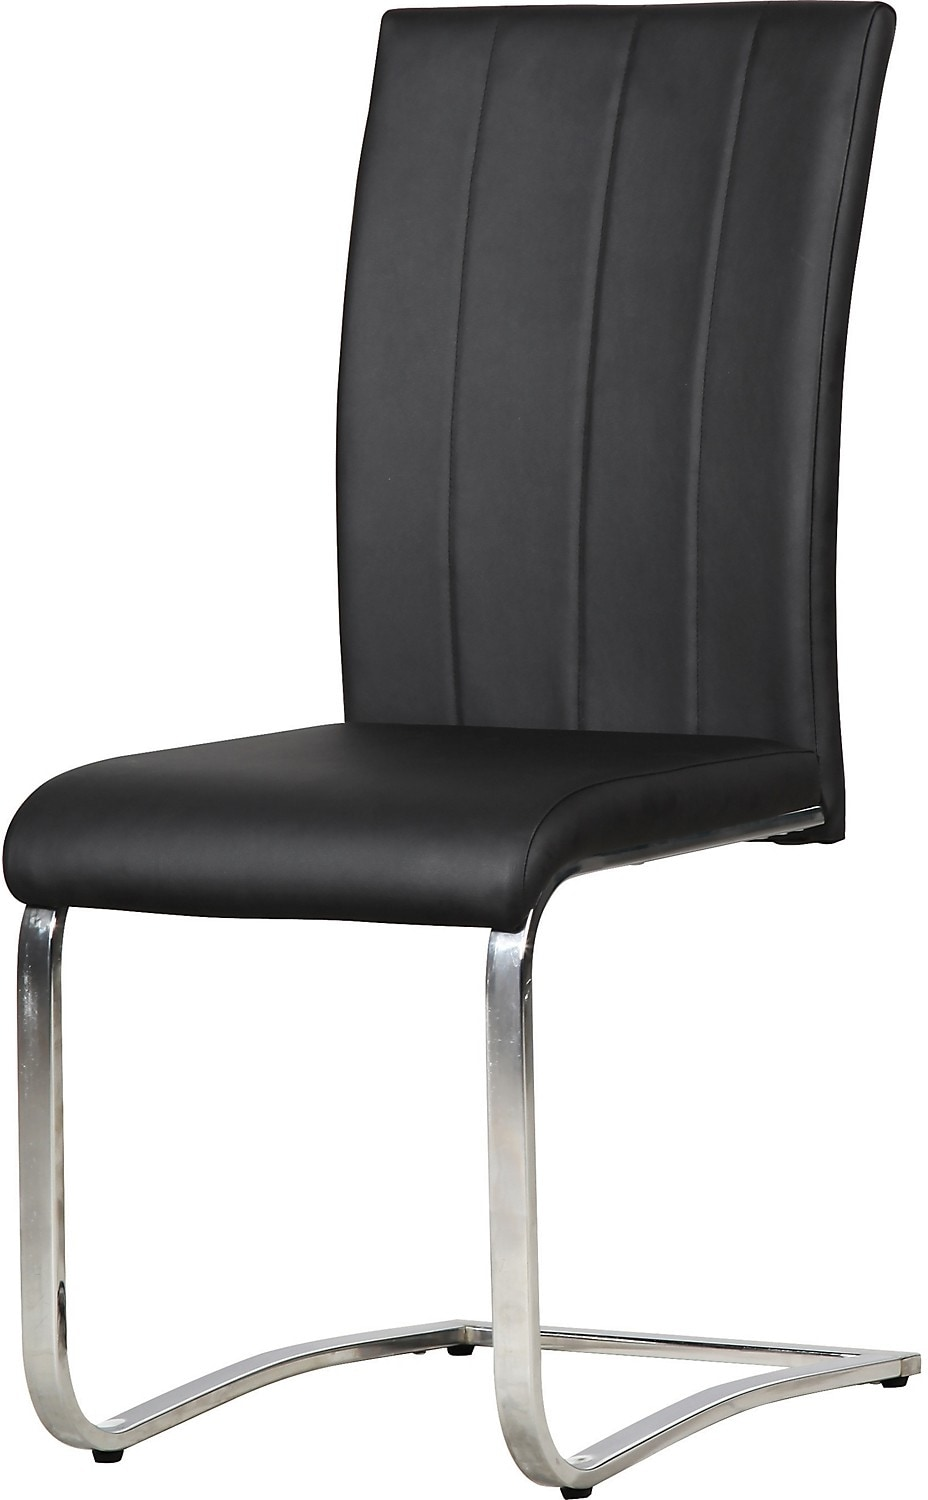 Dining Room Furniture - Tori Side Chair - Black